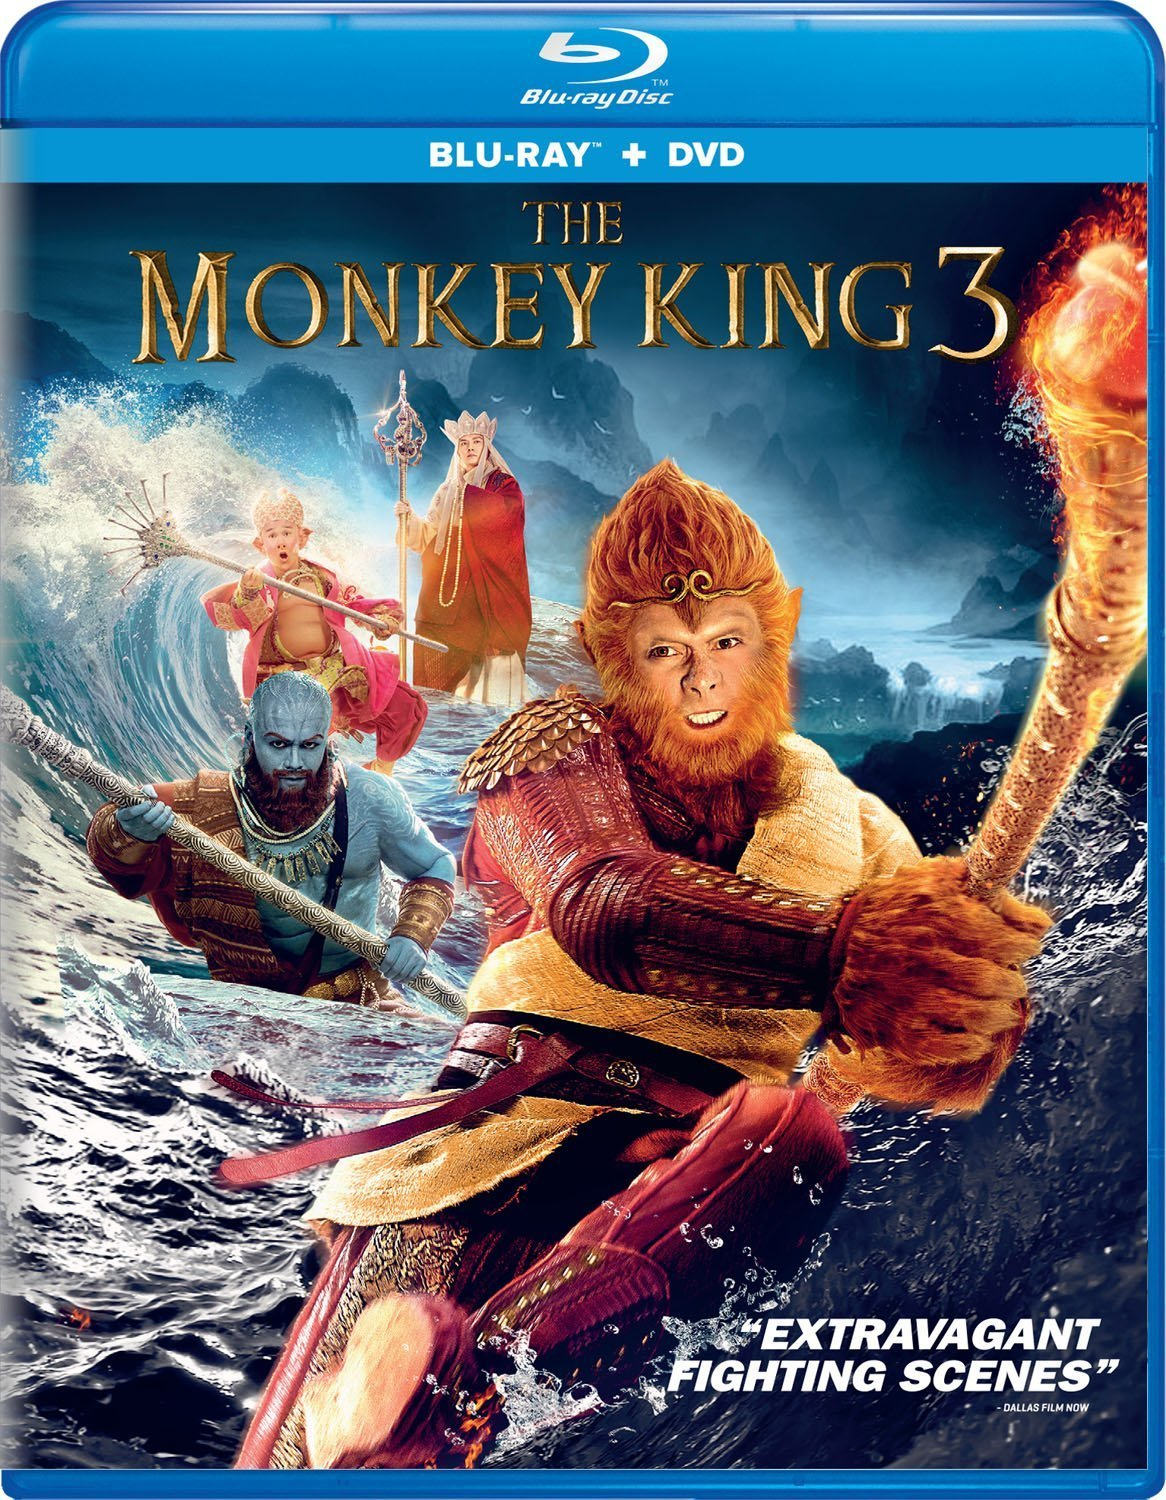 The Monkey King 3 (2018) Blu-ray